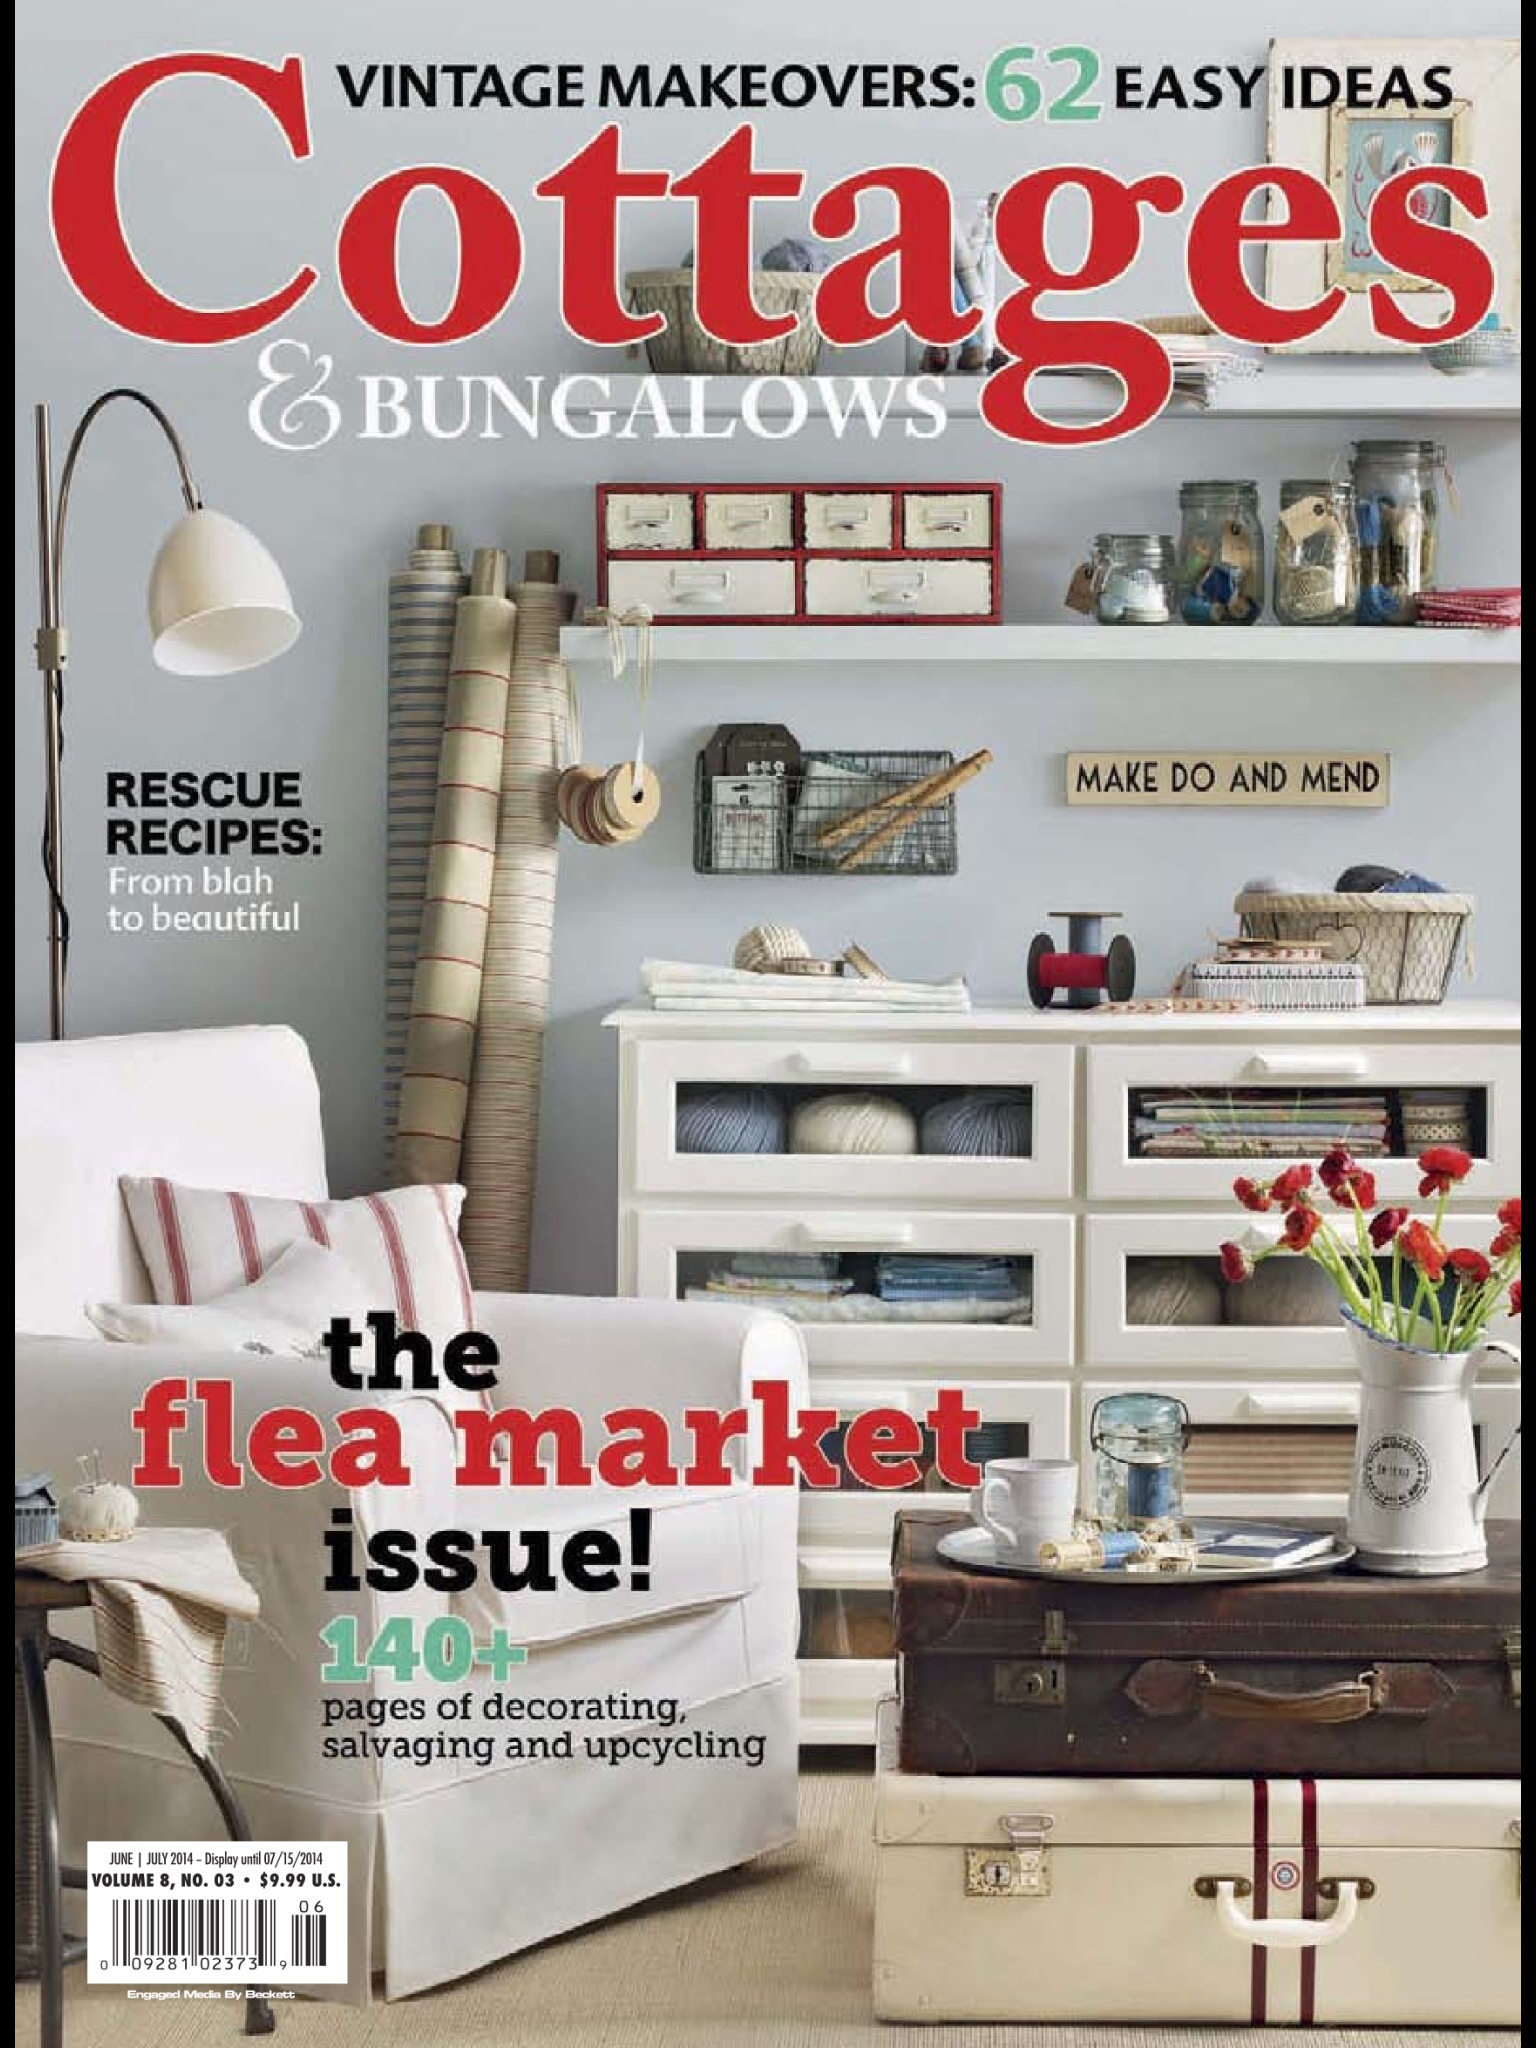 Cottages and Bungalows Magazine Cover 2014